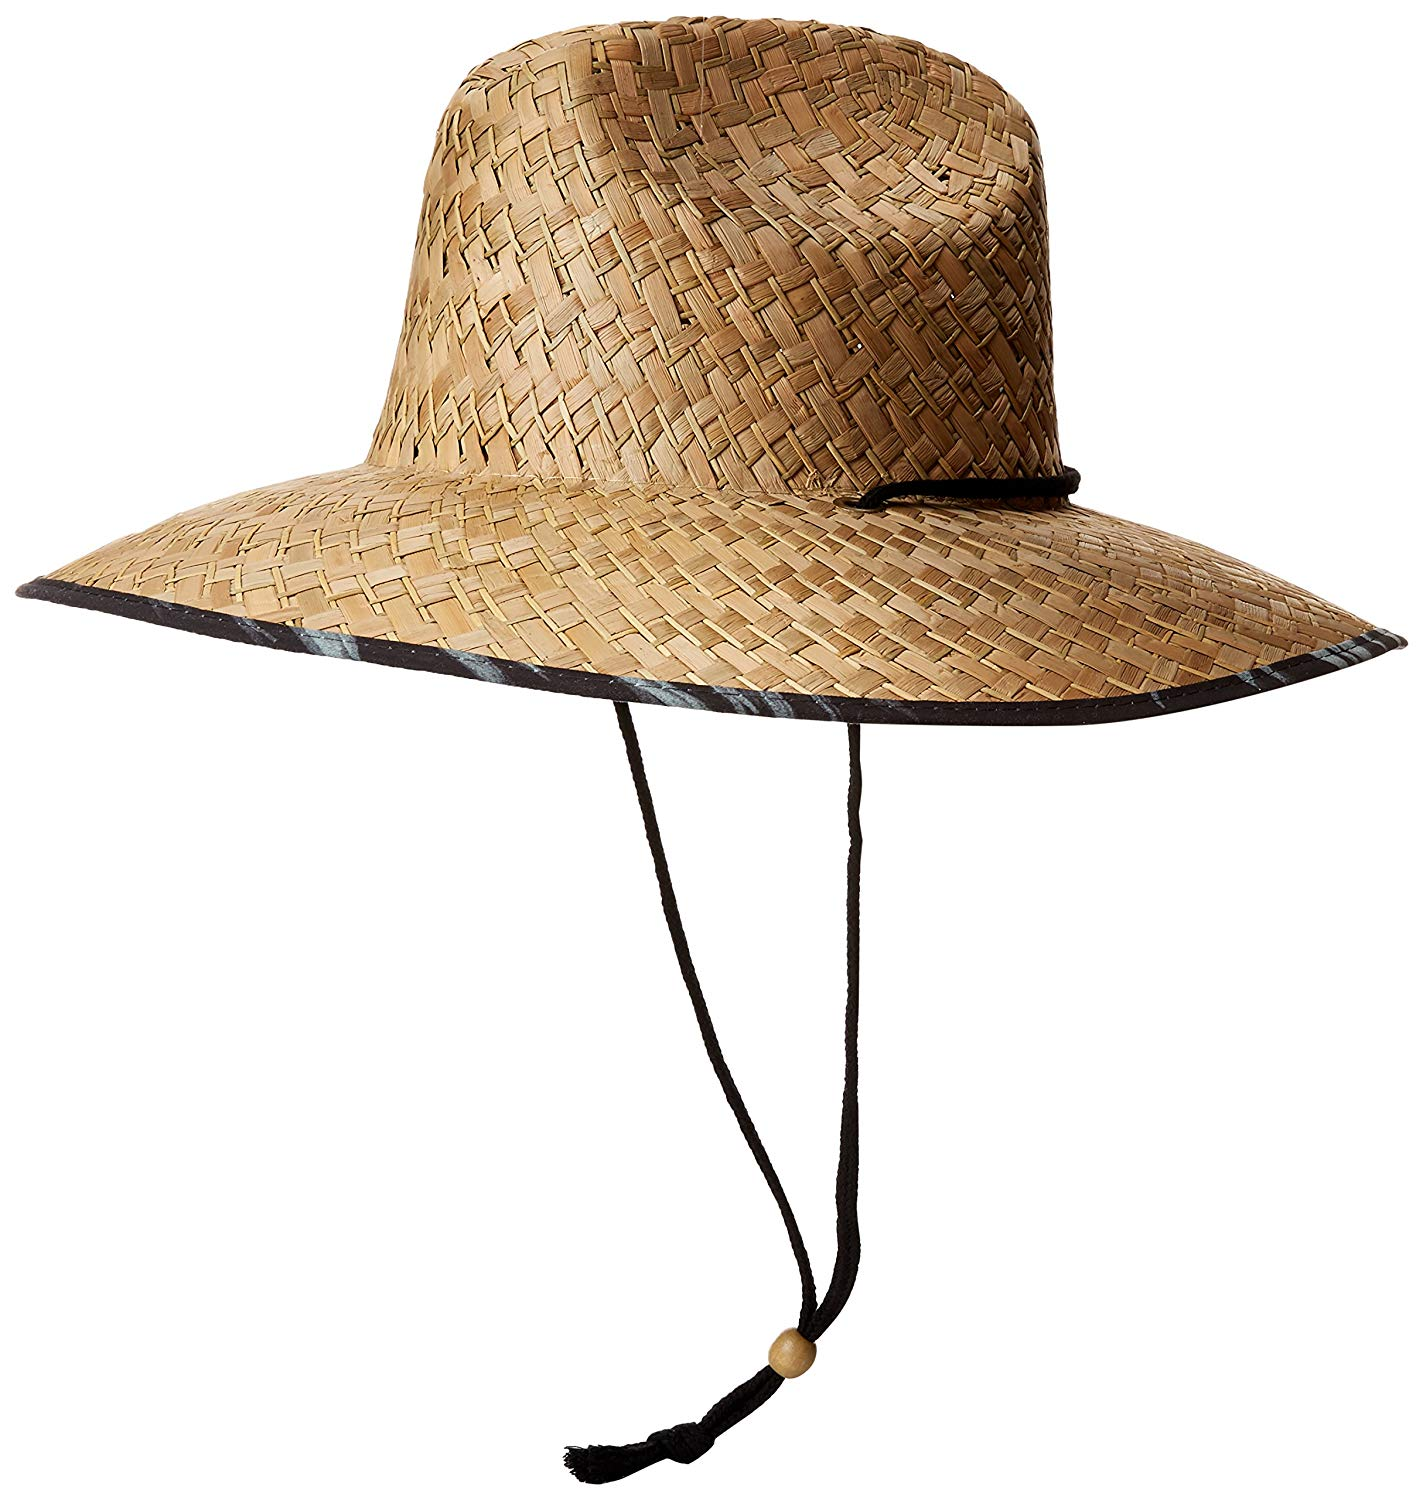 d771237cf9741 Get Quotations · San Diego Hat CO. Men s Straw Lifeguard Hat With  Adjustabel Chin Cord